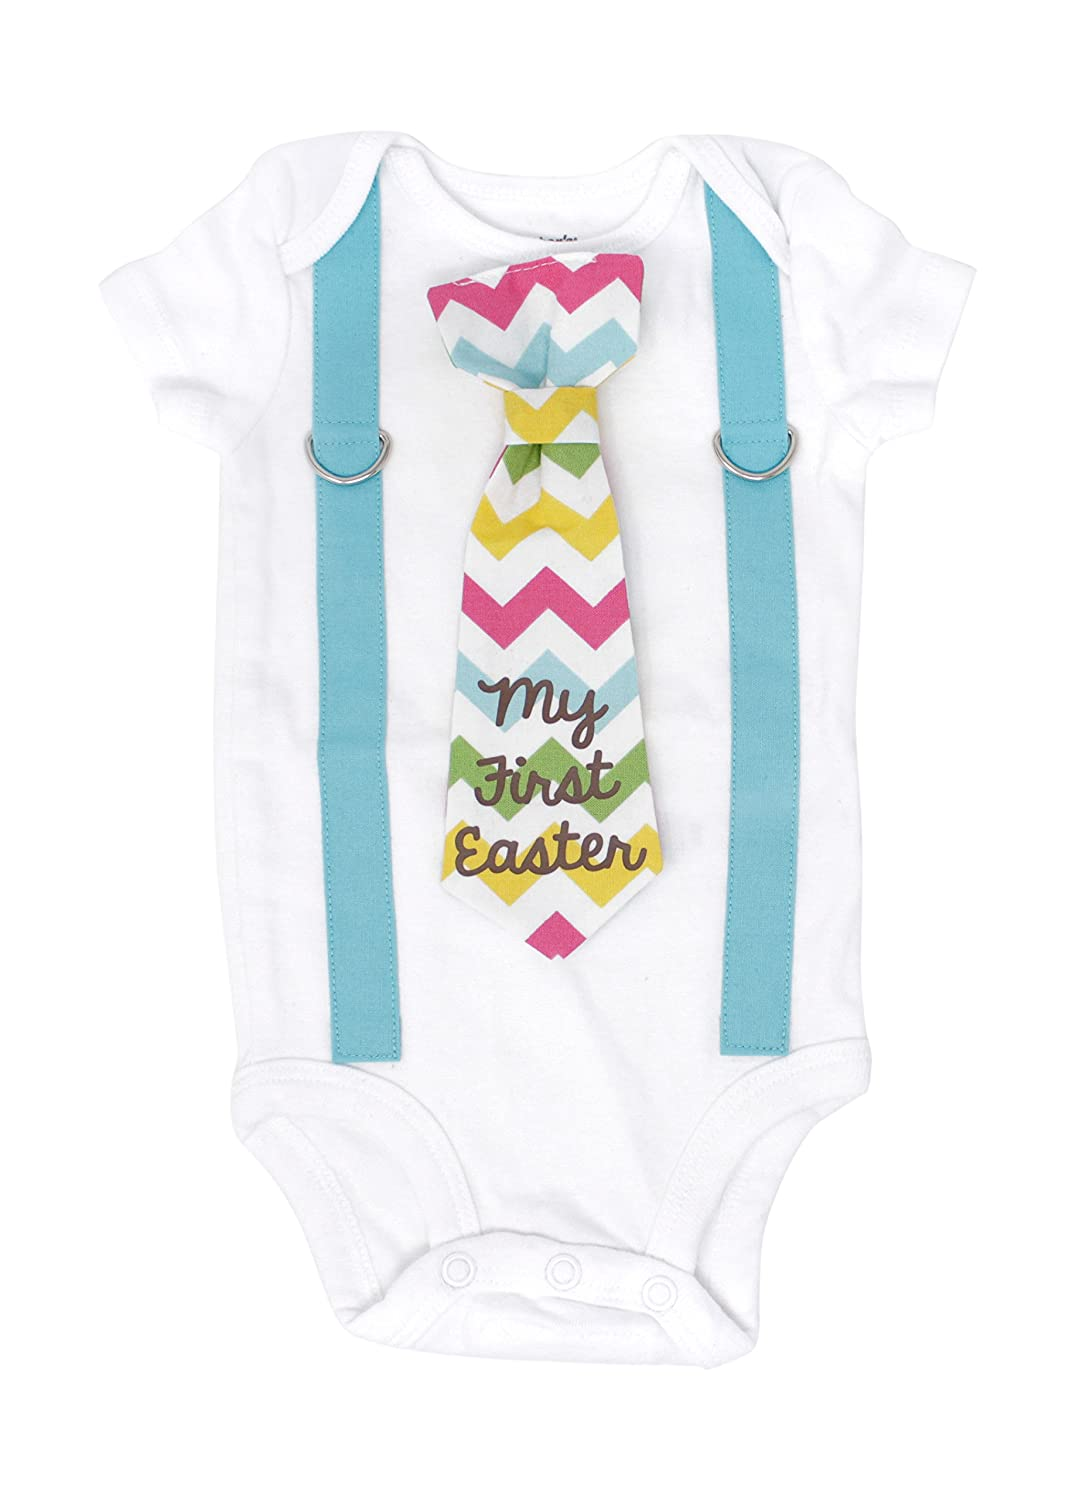 4602bd44c776 Cuddle Sleep Dream Baby Boy First Easter Outfit. My 1st Easter ...